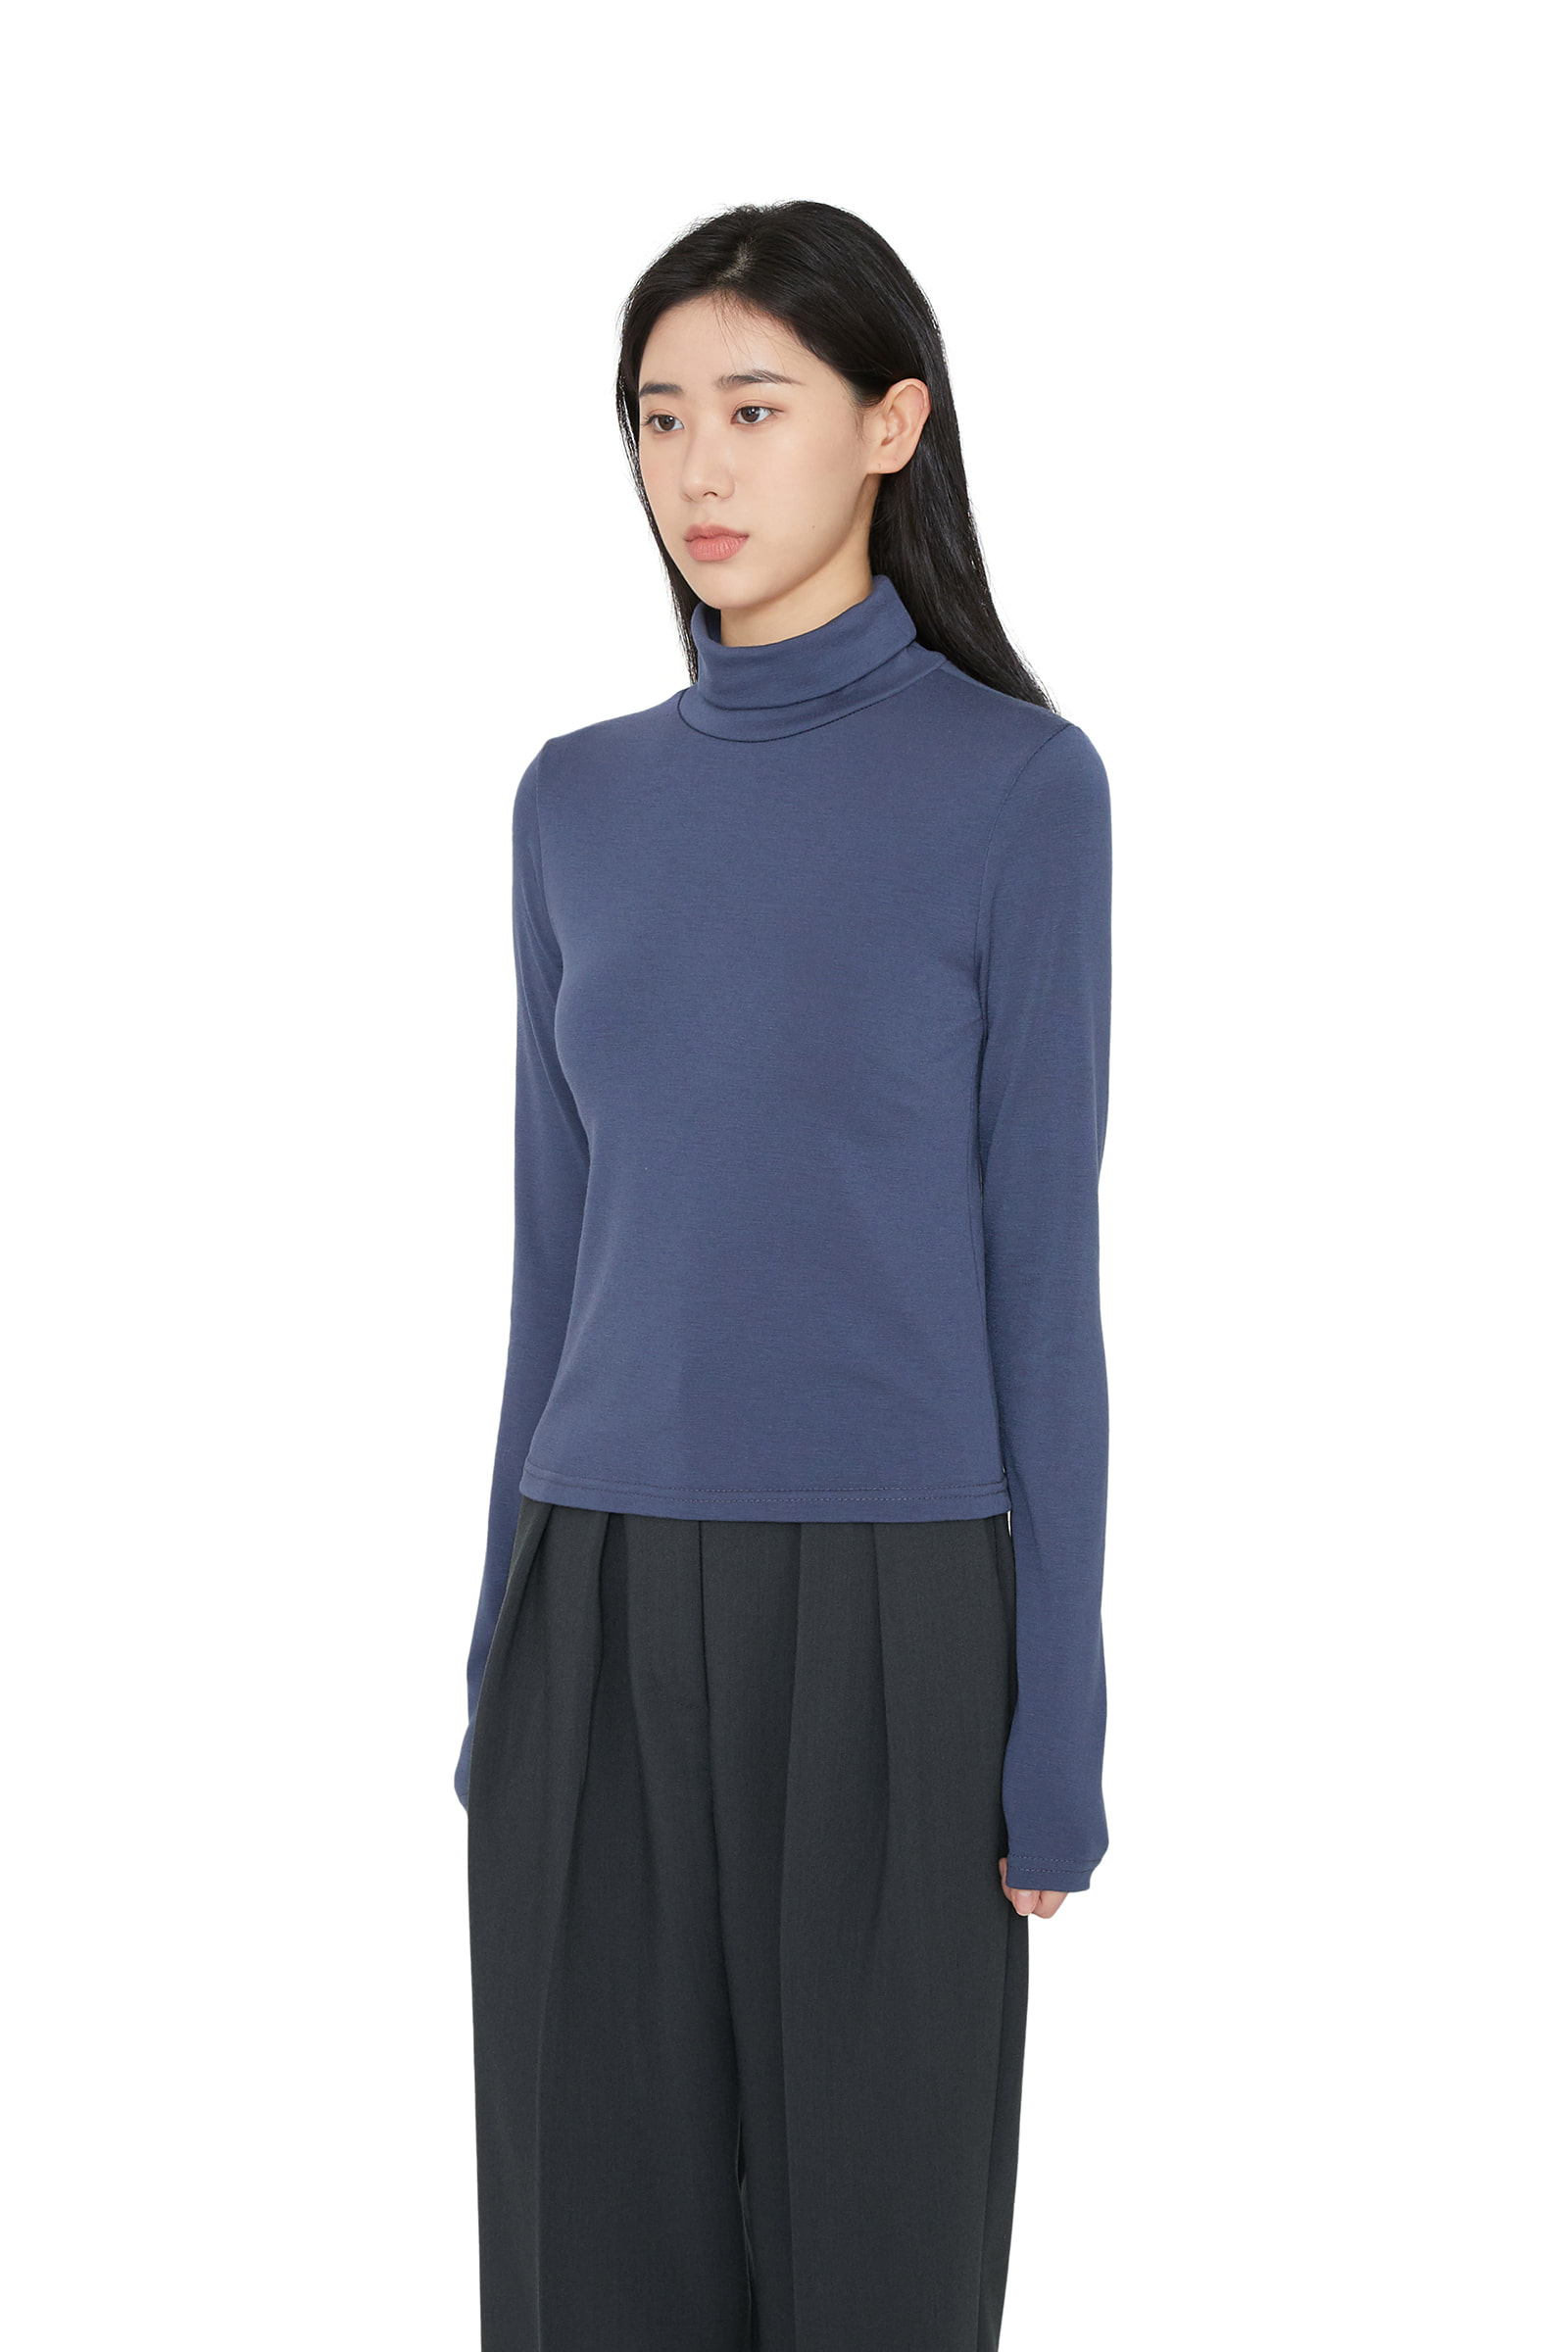 Layer Fleece-lined turtleneck top